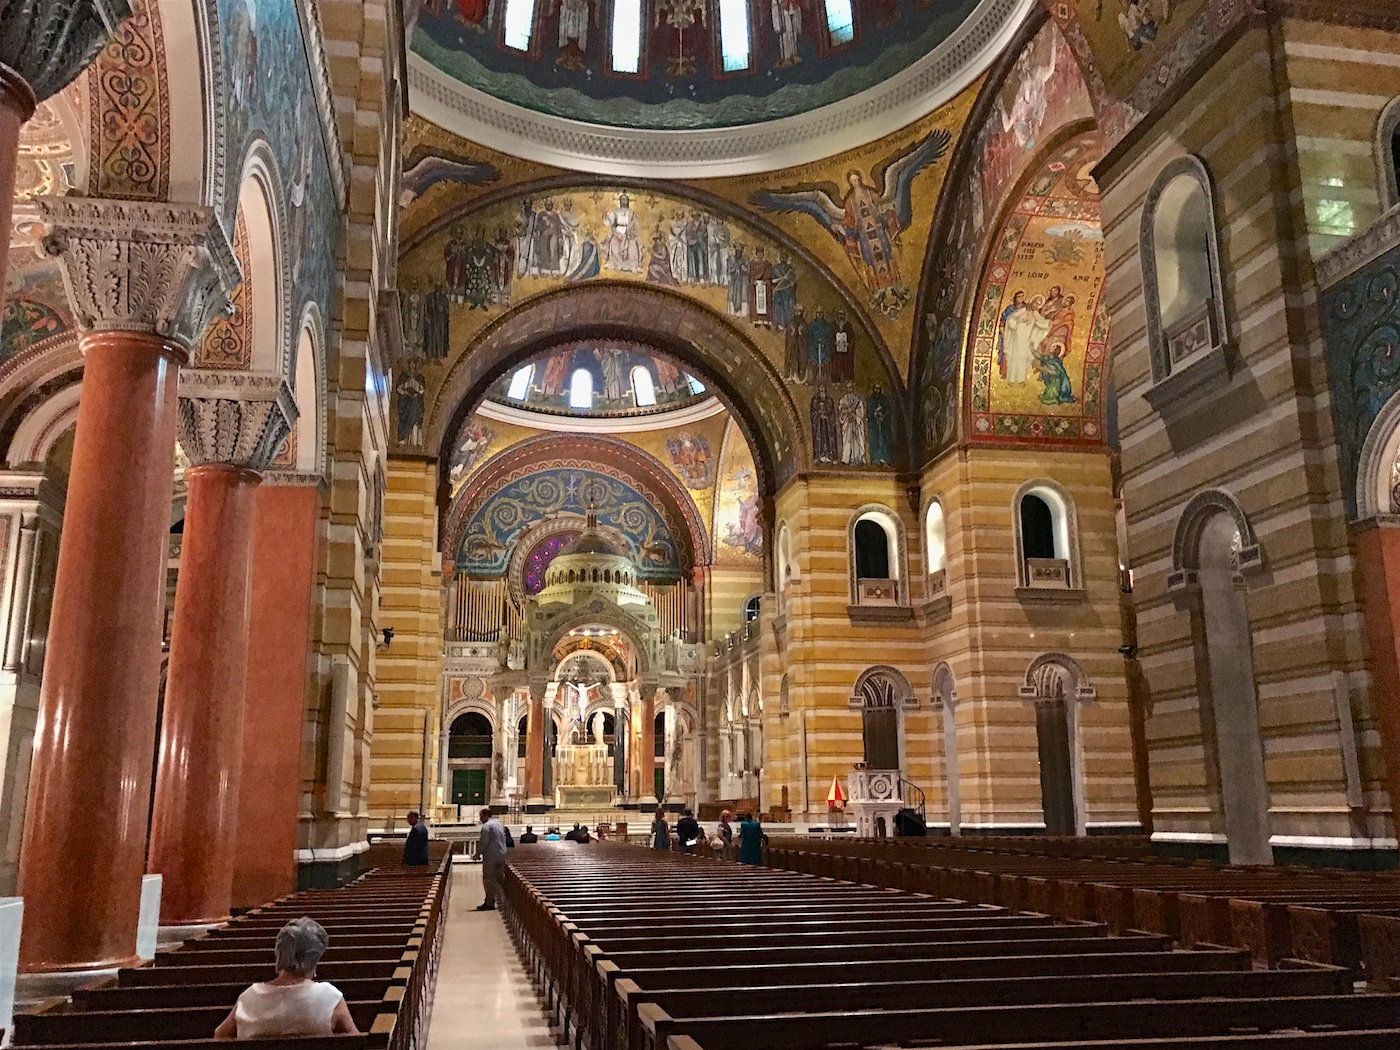 Color photograph of the Cathedral Basilica of Saint Louis. View of the interior of the nave toward the sanctuary. At the top, some of the windows of the central dome and the sanctuary dome are visible along with many of the glass mosaics.